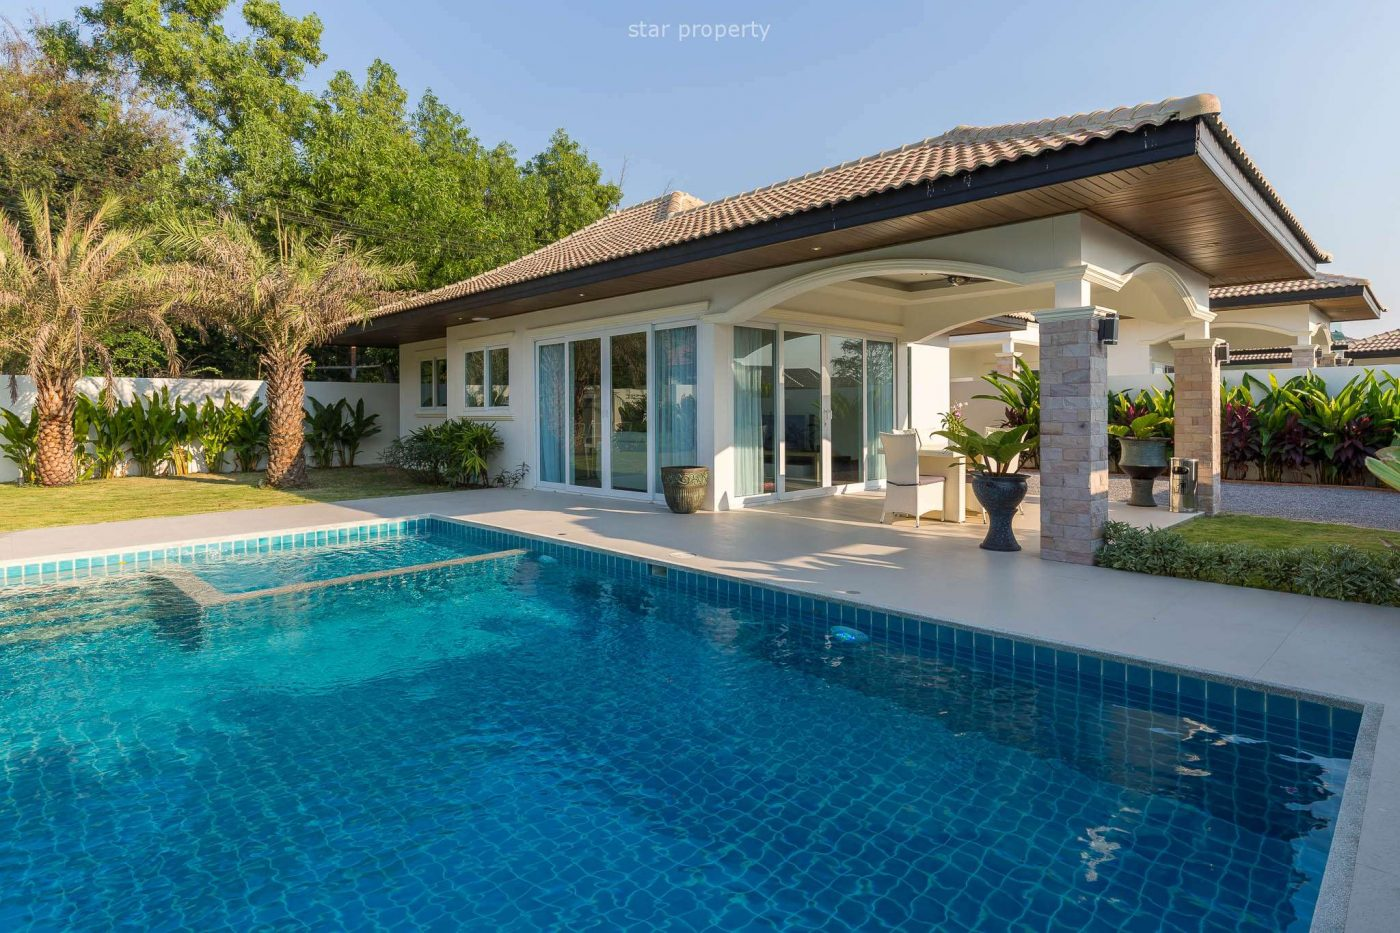 Beautiful 3 Bedroom Pool Villa at Orchid Paradise Homes Hua Hin Soi 58 at Hua Hin District, Prachuap Khiri Khan, Thailand